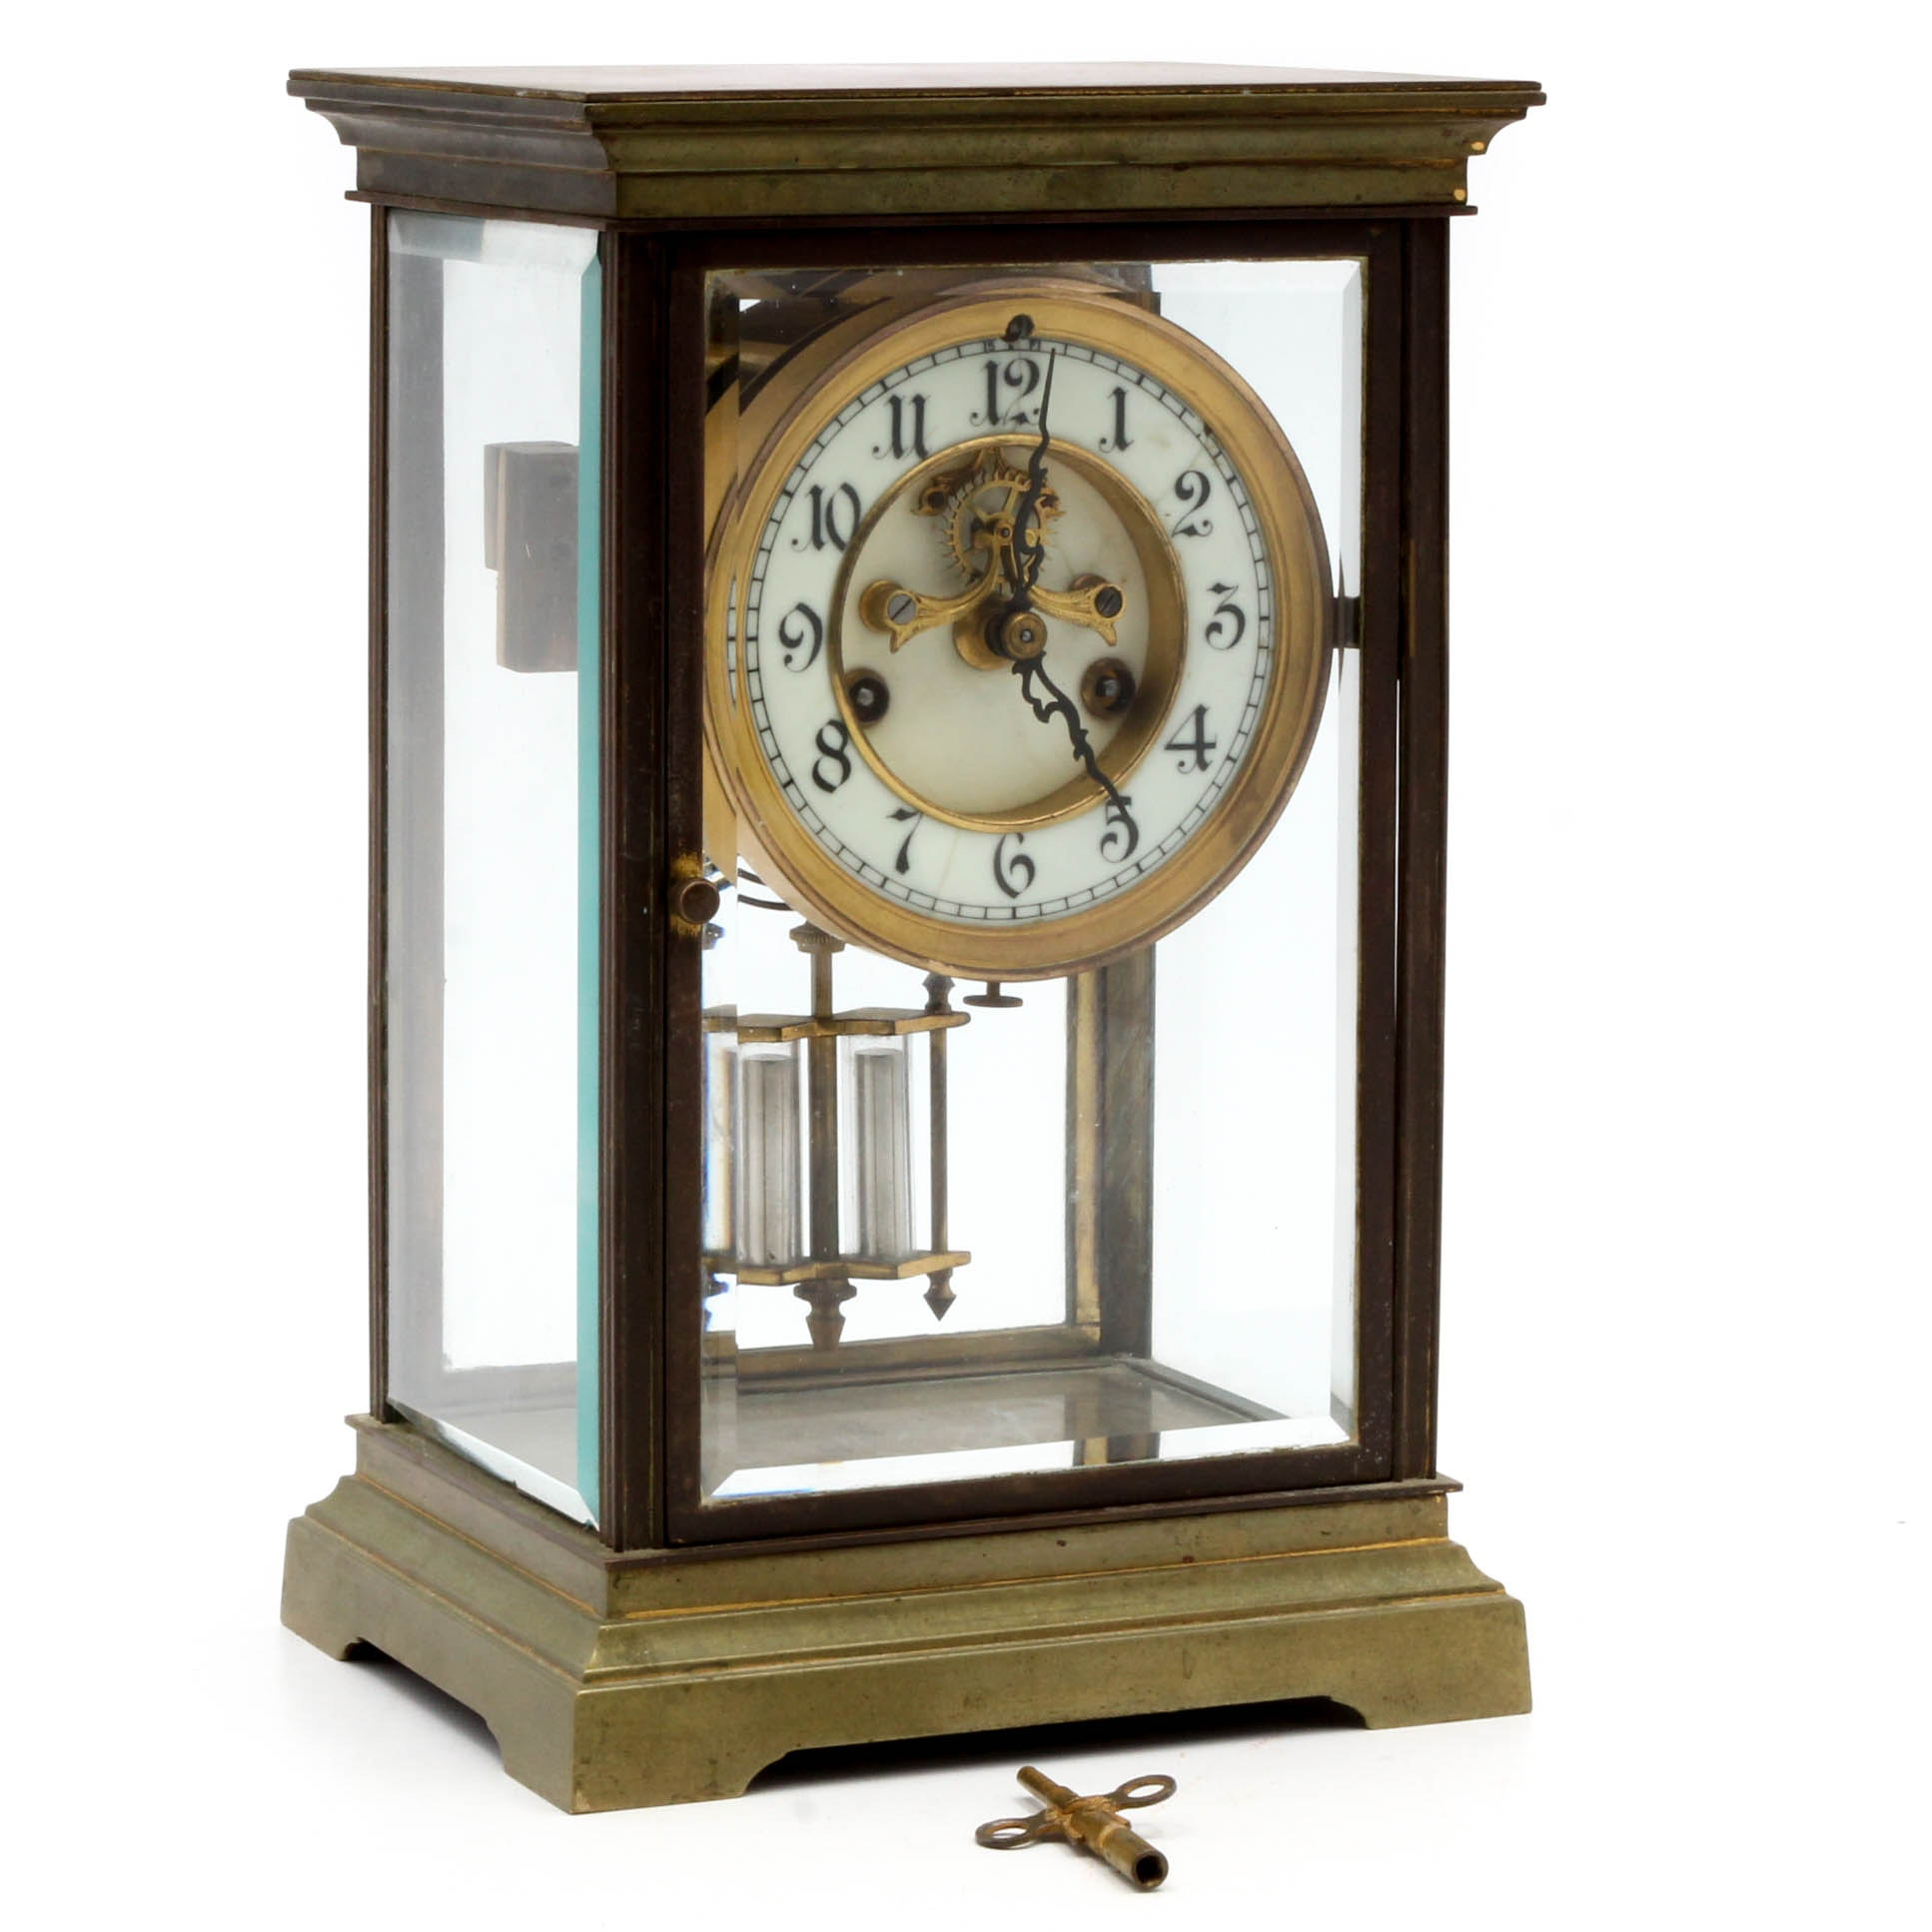 Vintage Waterbury Clock Co. Brass and Beveled Glass Mantel Clock